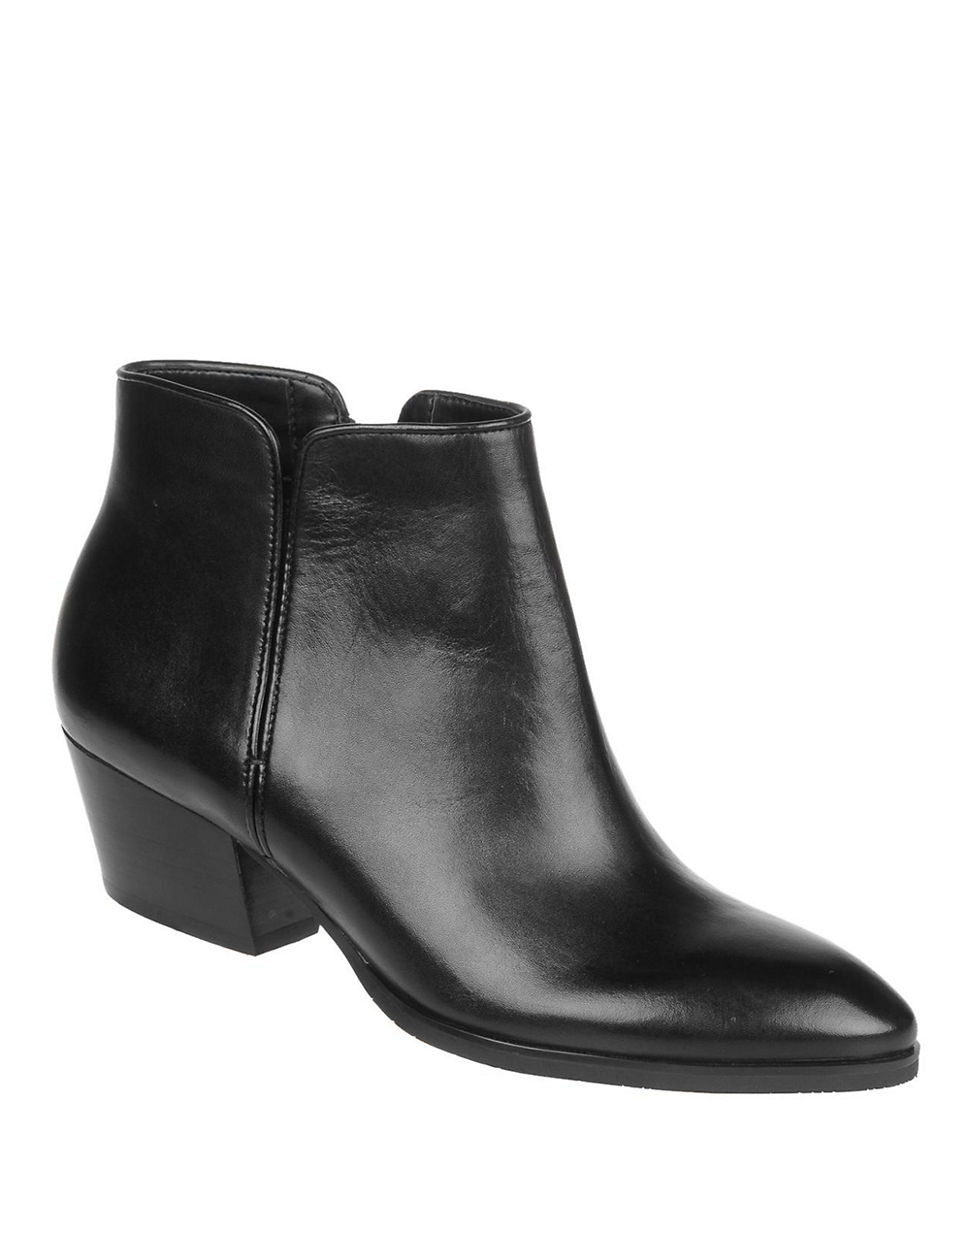 franco sarto quasar leather boots in black lyst